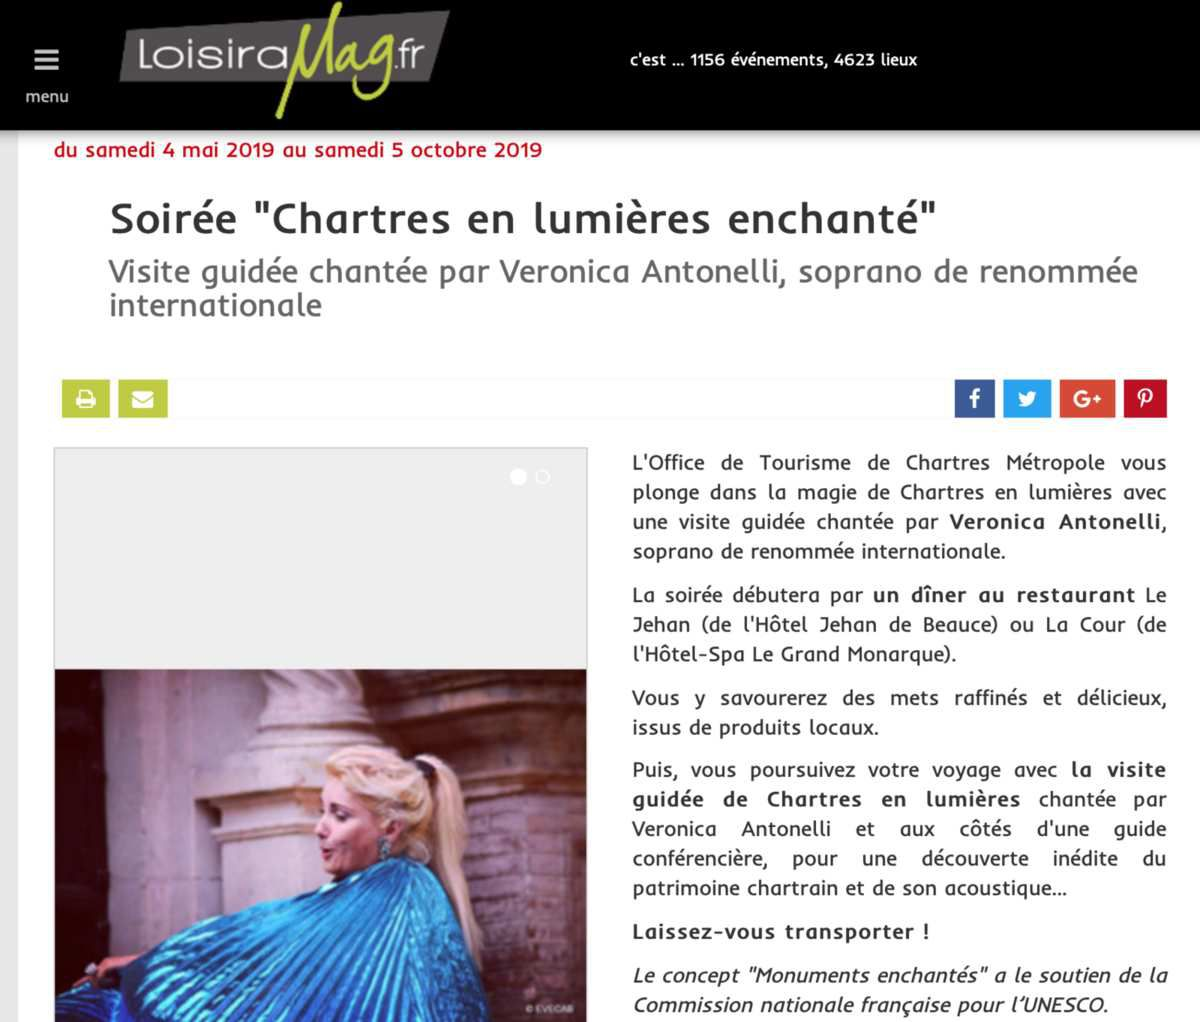 Loisiramag Chartres en Lumières enchanté avec la soprano internationale Veronica Antonelli